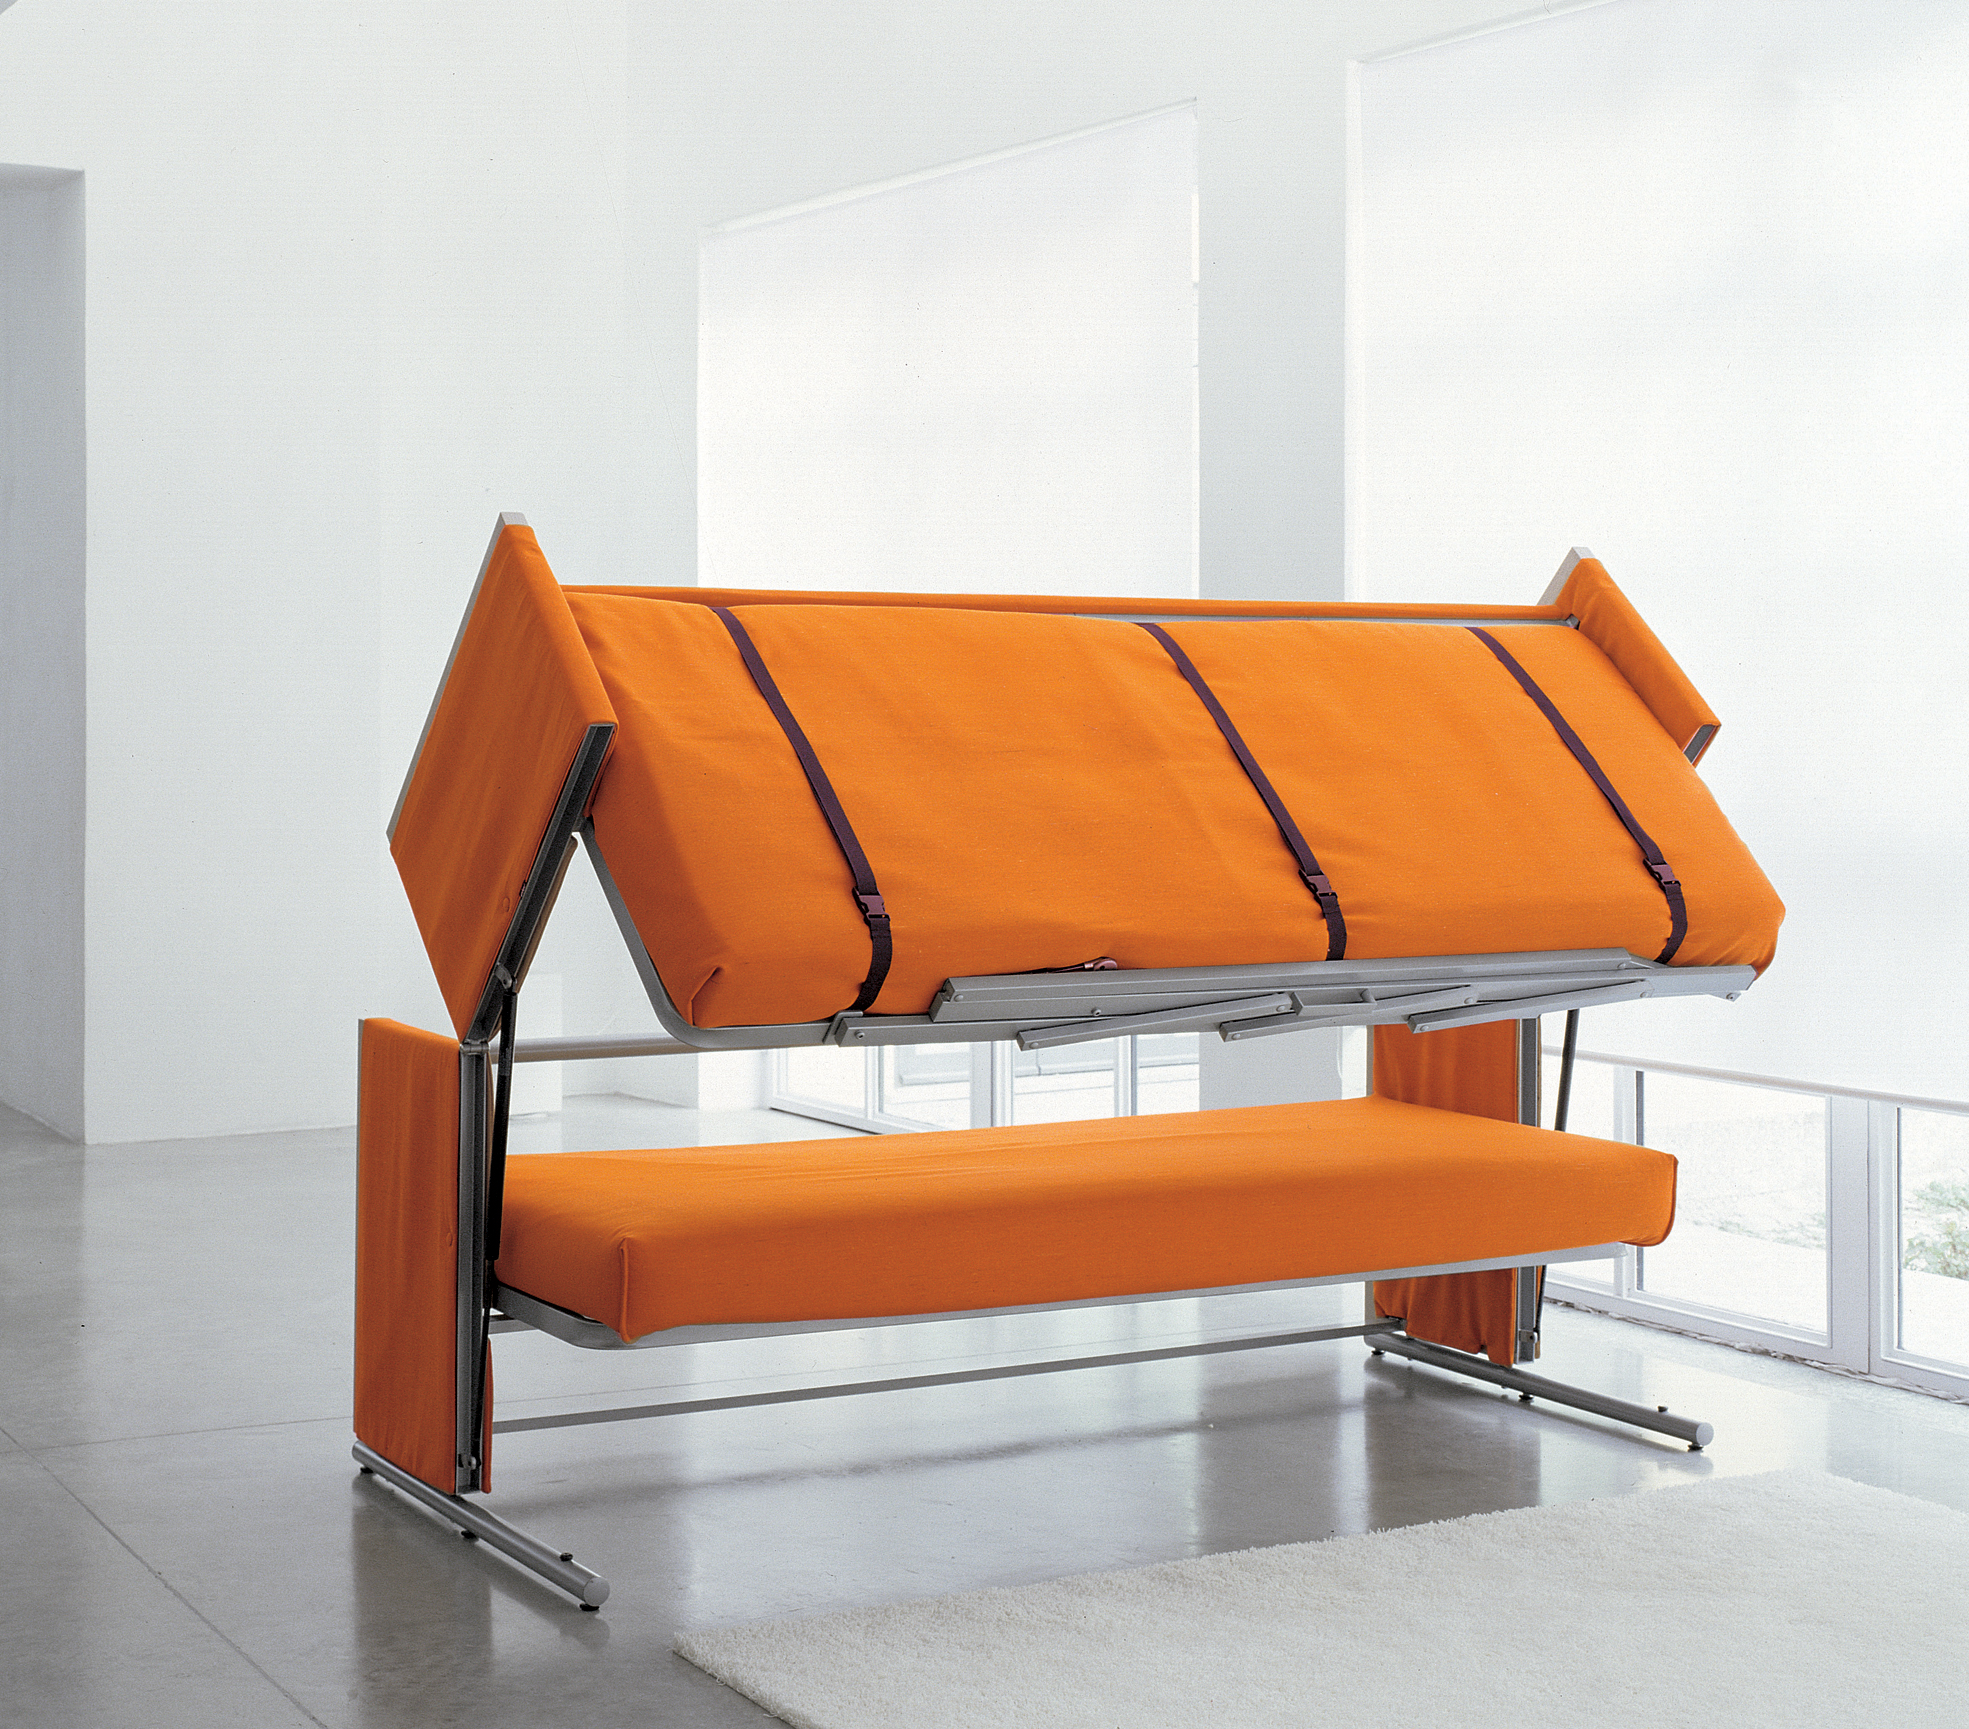 Creative Couch Designs 31 creative furniture design ideas for small homes.